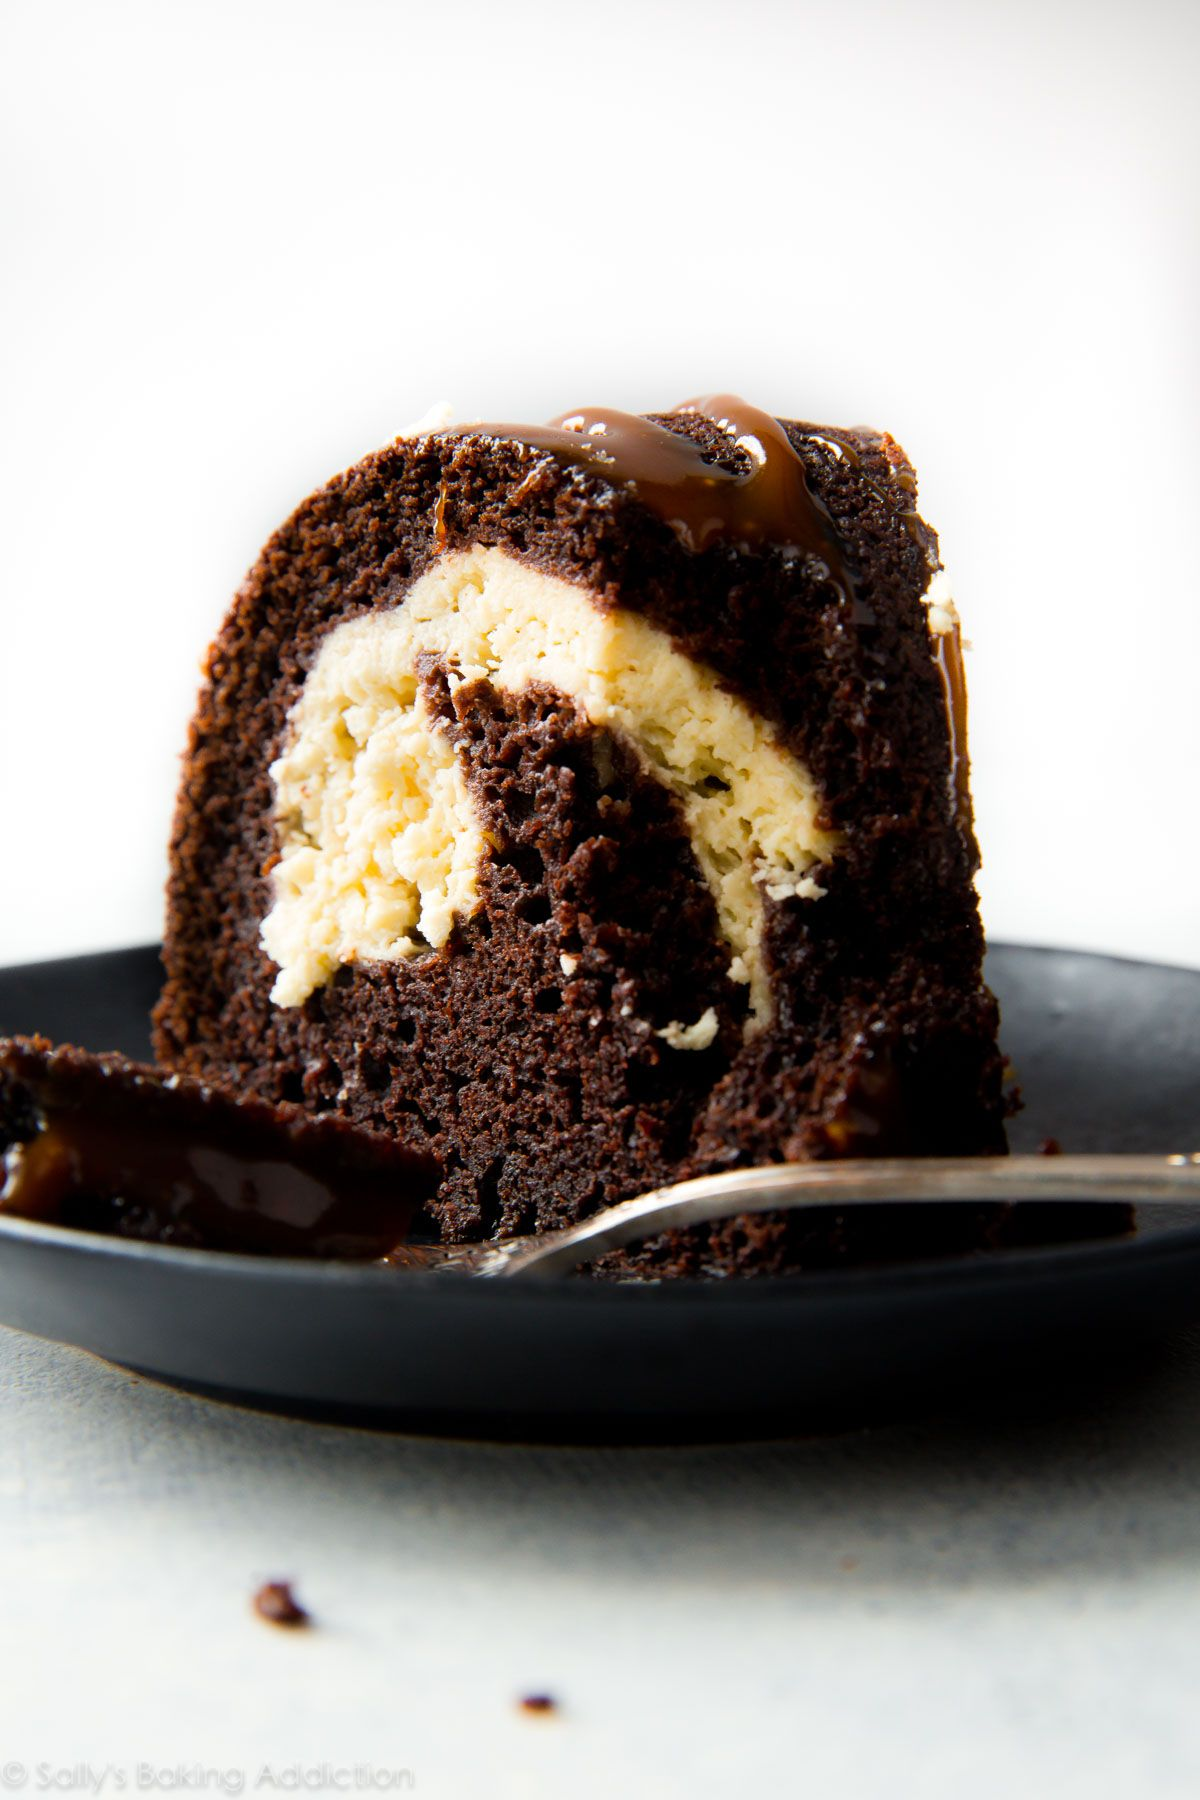 Chocolate Cream Cheese Bundt Cake Recipe Cakes Cake Chocolate